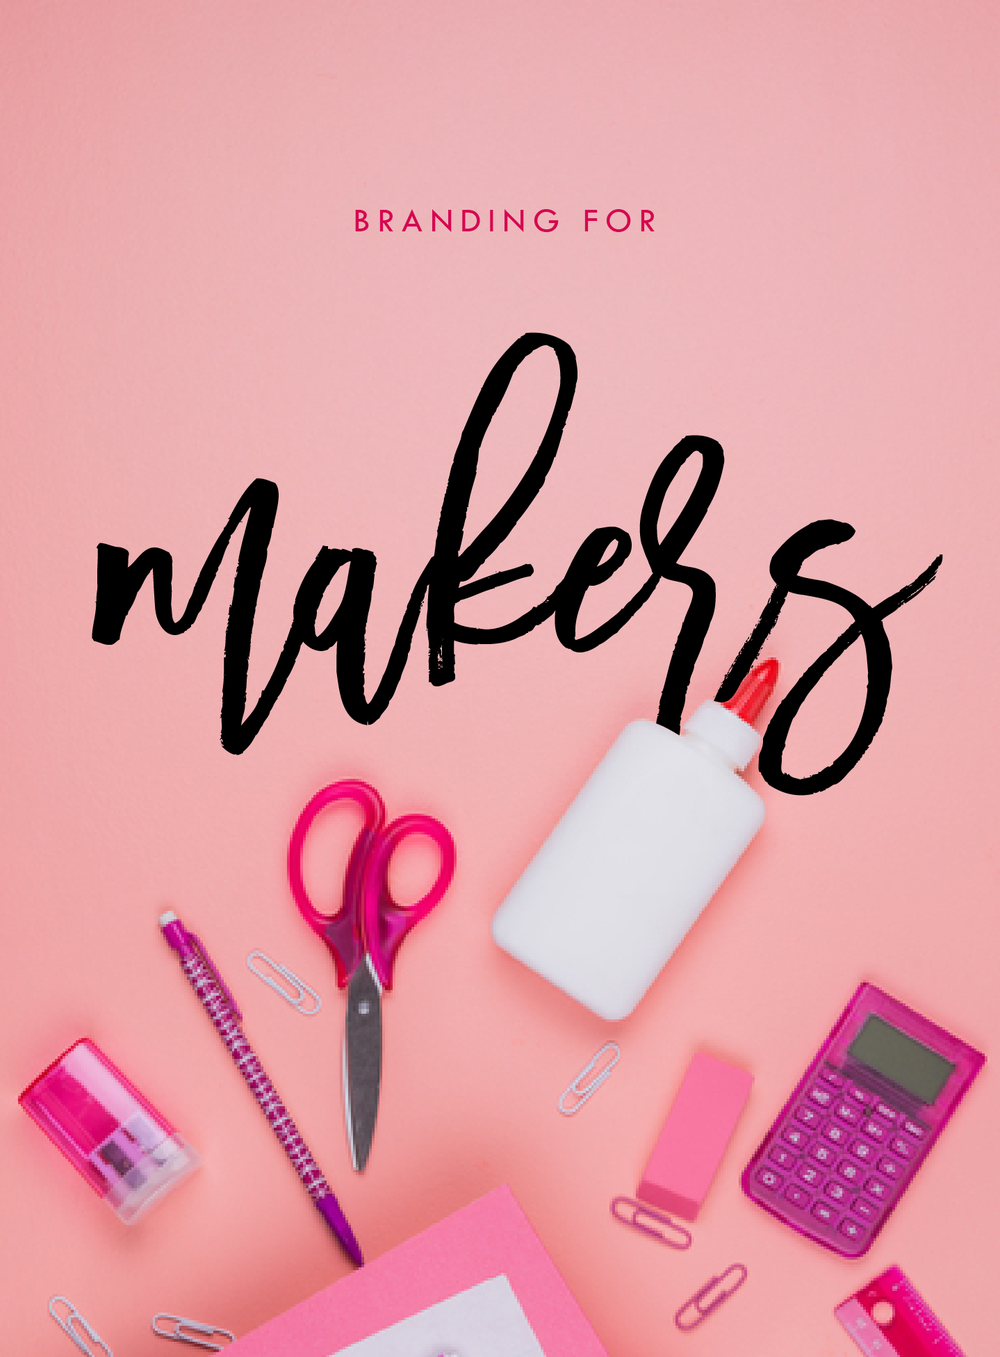 branding-for-makers-june-mango-design-01.png